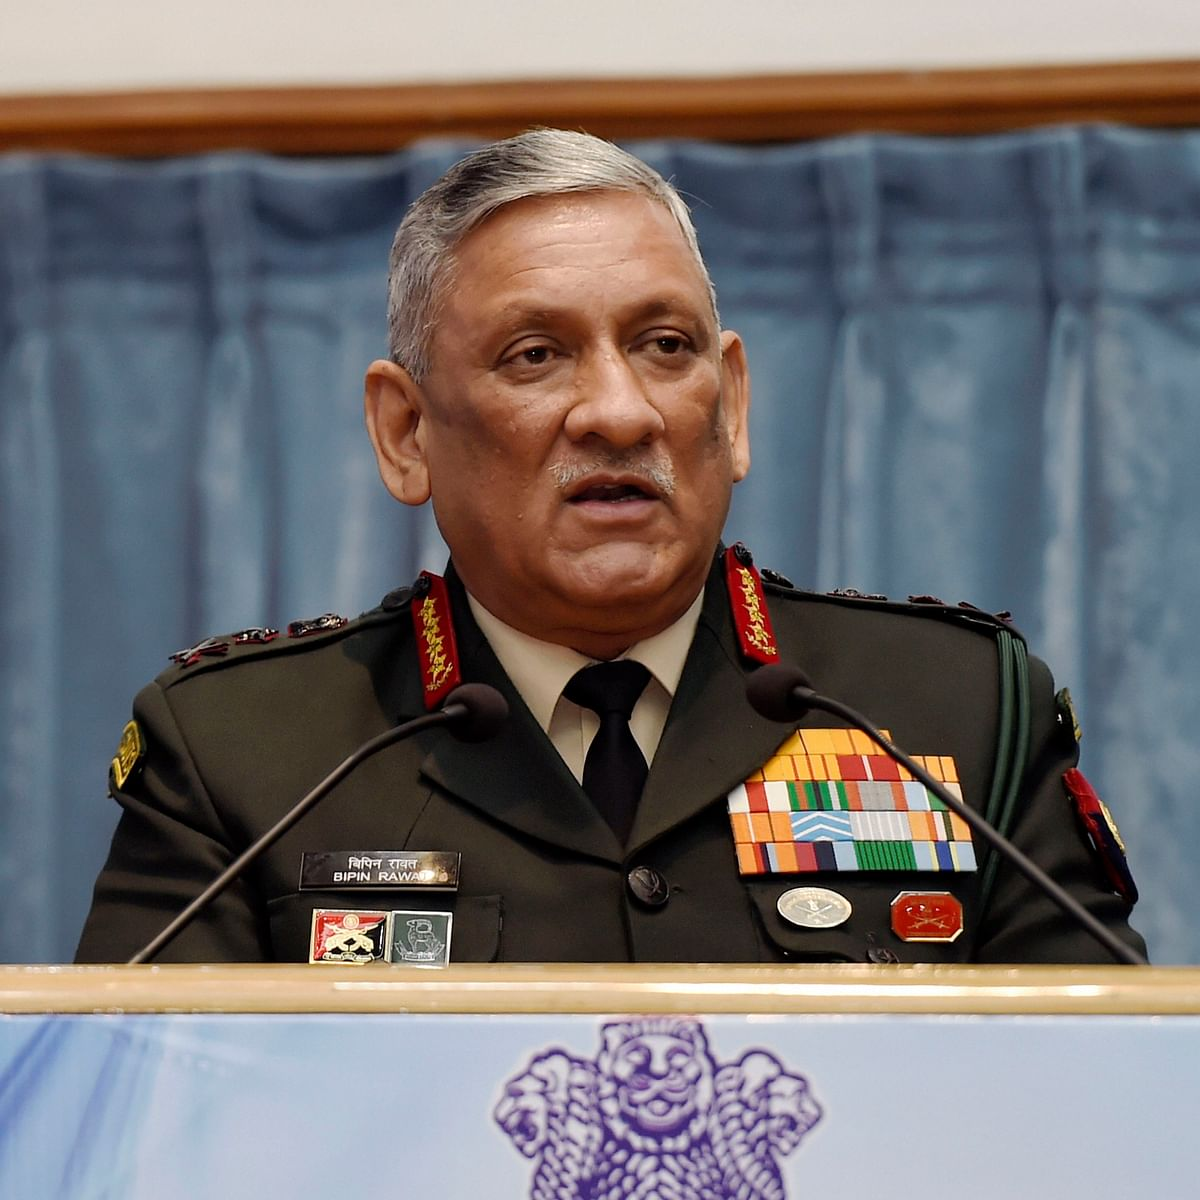 'Army Chief or RSS goon': Twitter mocks Bipin Rawat for 'political' comment on CAA protests